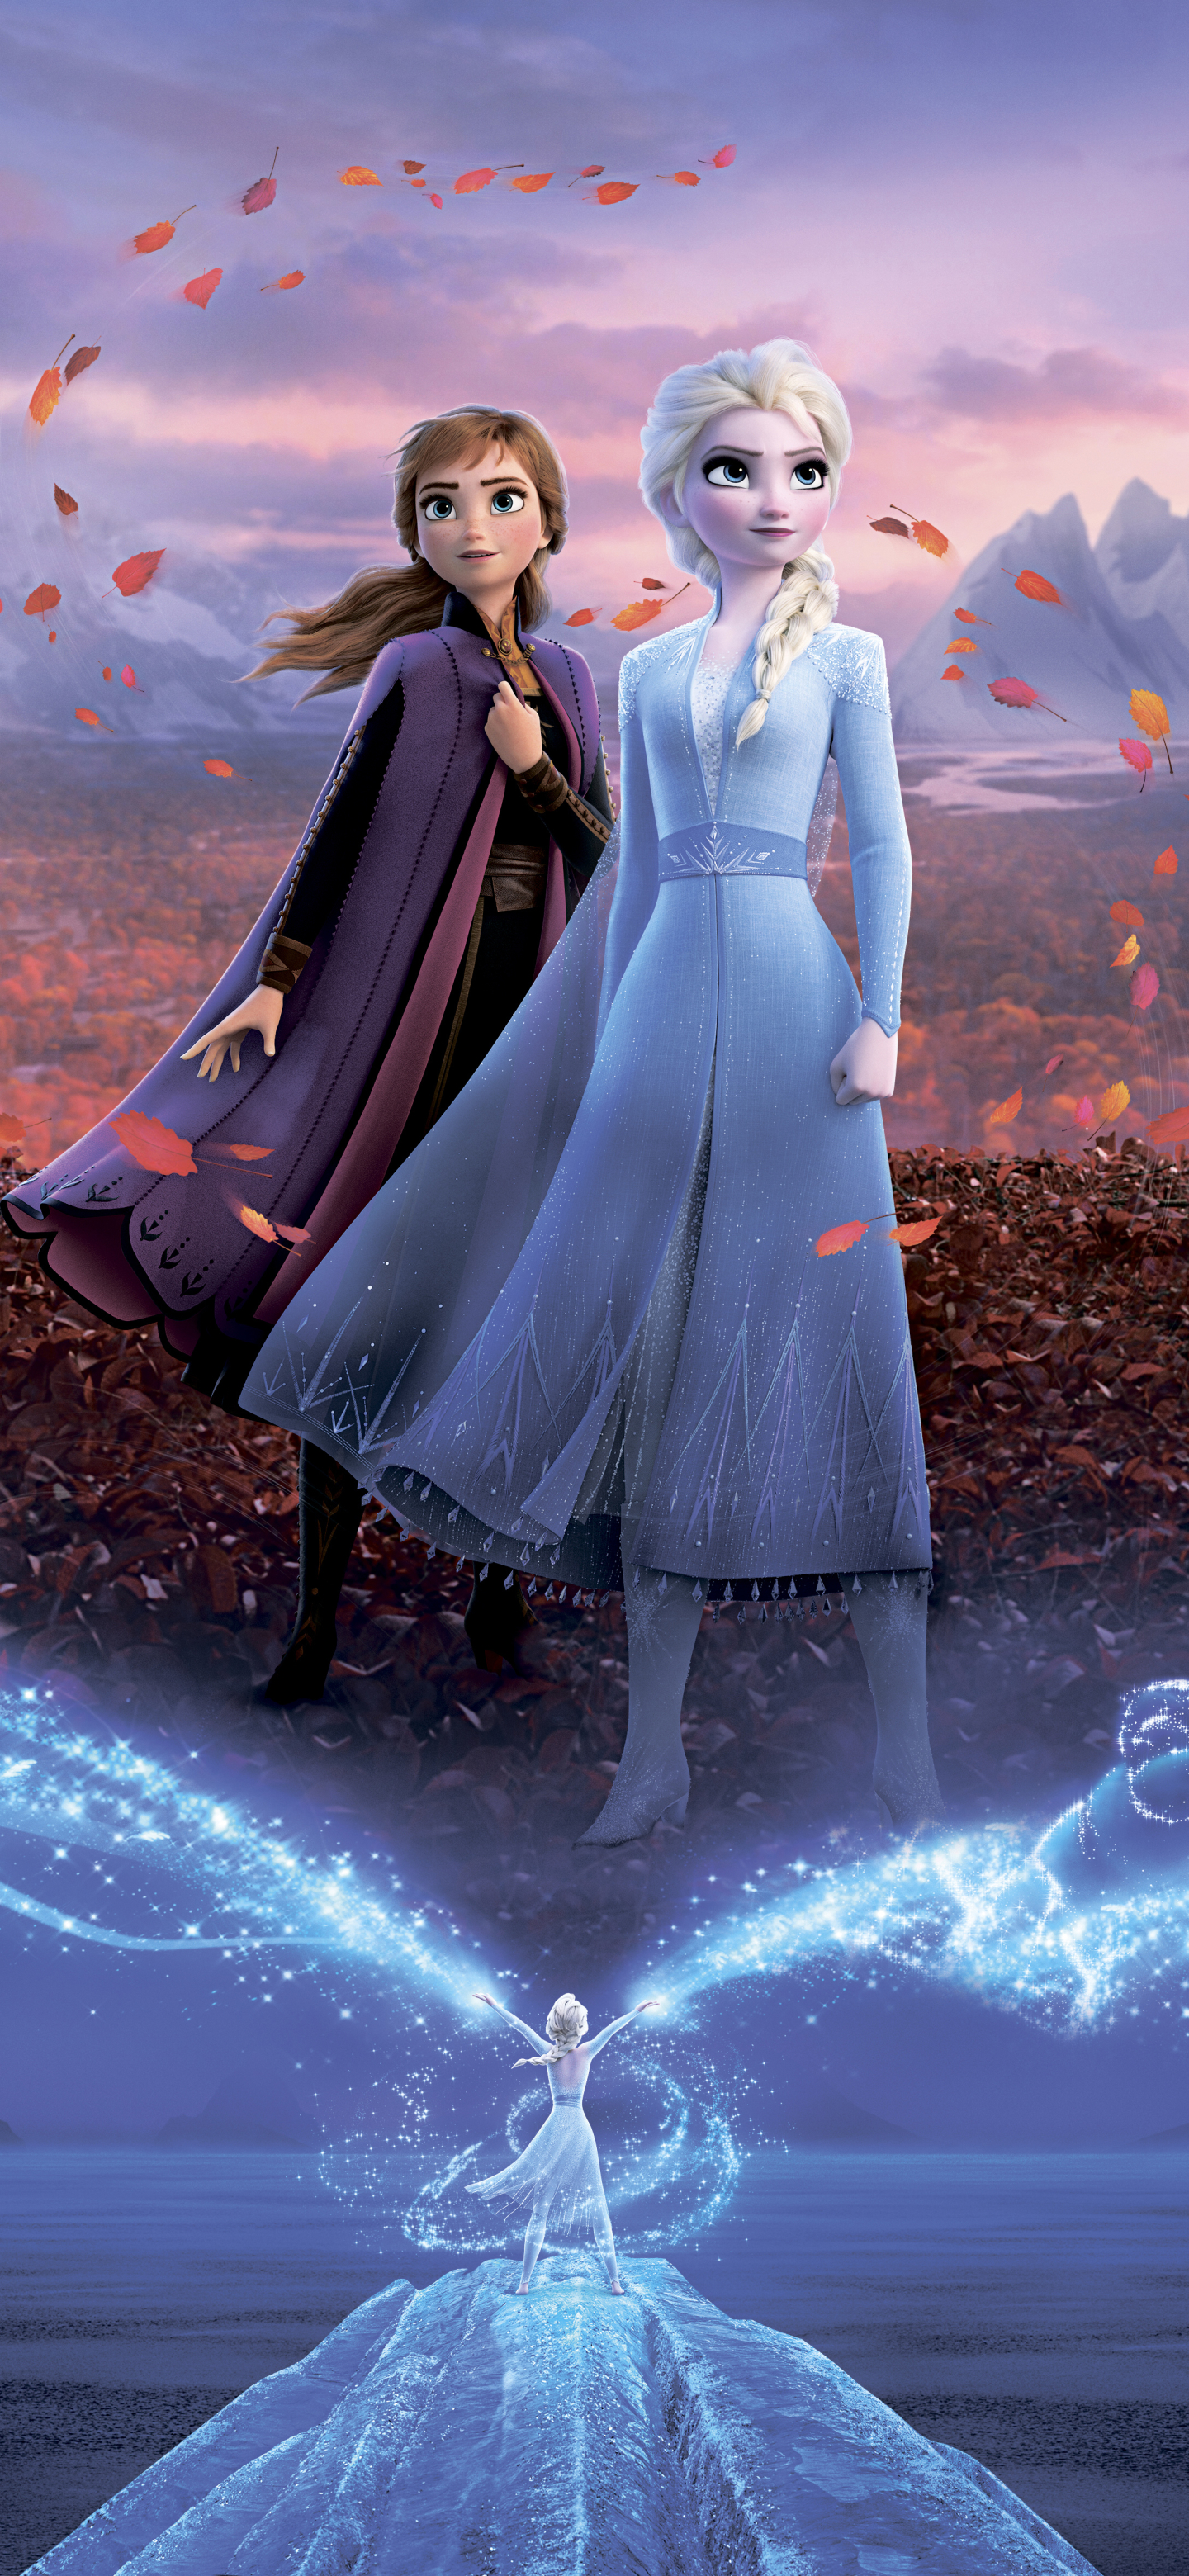 Movie/Frozen 2 (1440x3120) Wallpaper ID: 827997 - Mobile Abyss